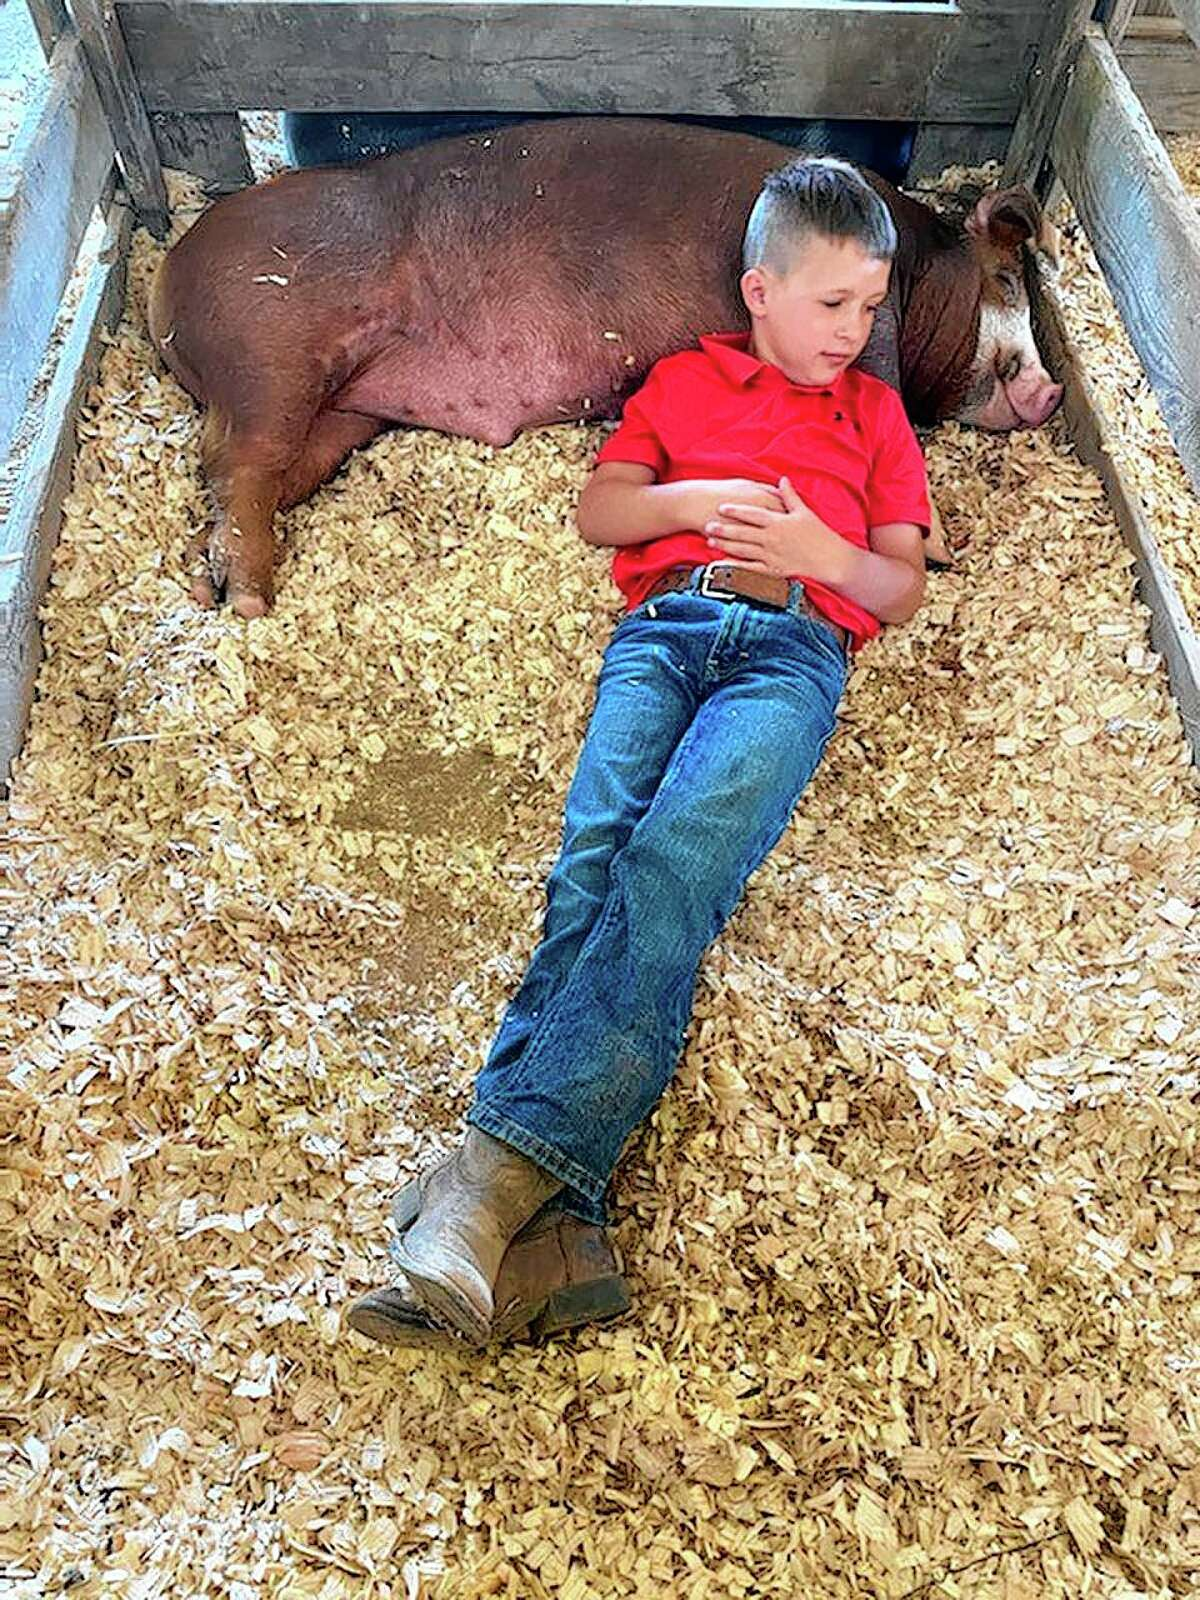 Ryder Armstrong, 9, joined 4-H this year and showcased his pig, Throttle, at the Morgan County Fair.